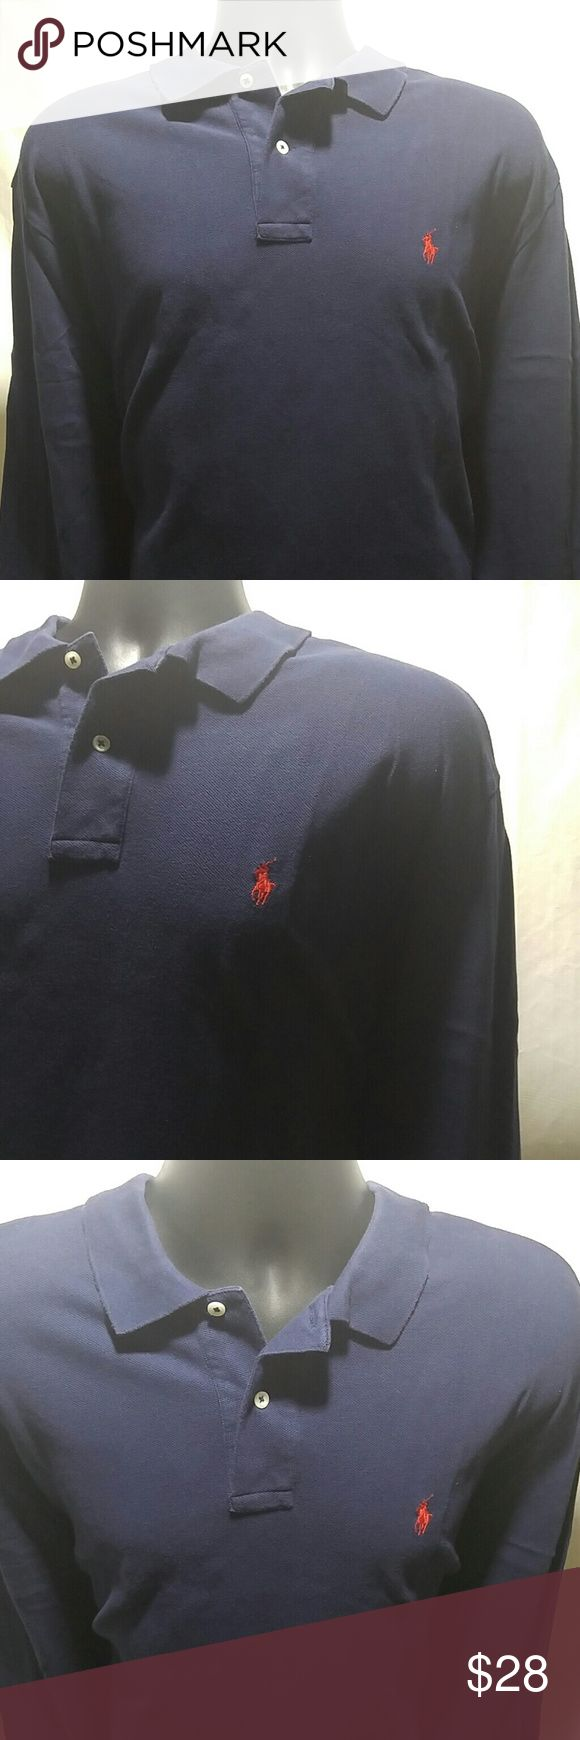 POLO BY RALPH LAUREN Navy Blue Polo Shirt Size XL POLO BY RALPH LAUREN Navy Blue POLO shirt.  This shirt is long sleeved, and a size XL.  This POLO BY RALPH LAUREN Polo Shirt is in excellent condition. Polo by Ralph Lauren Shirts Polos